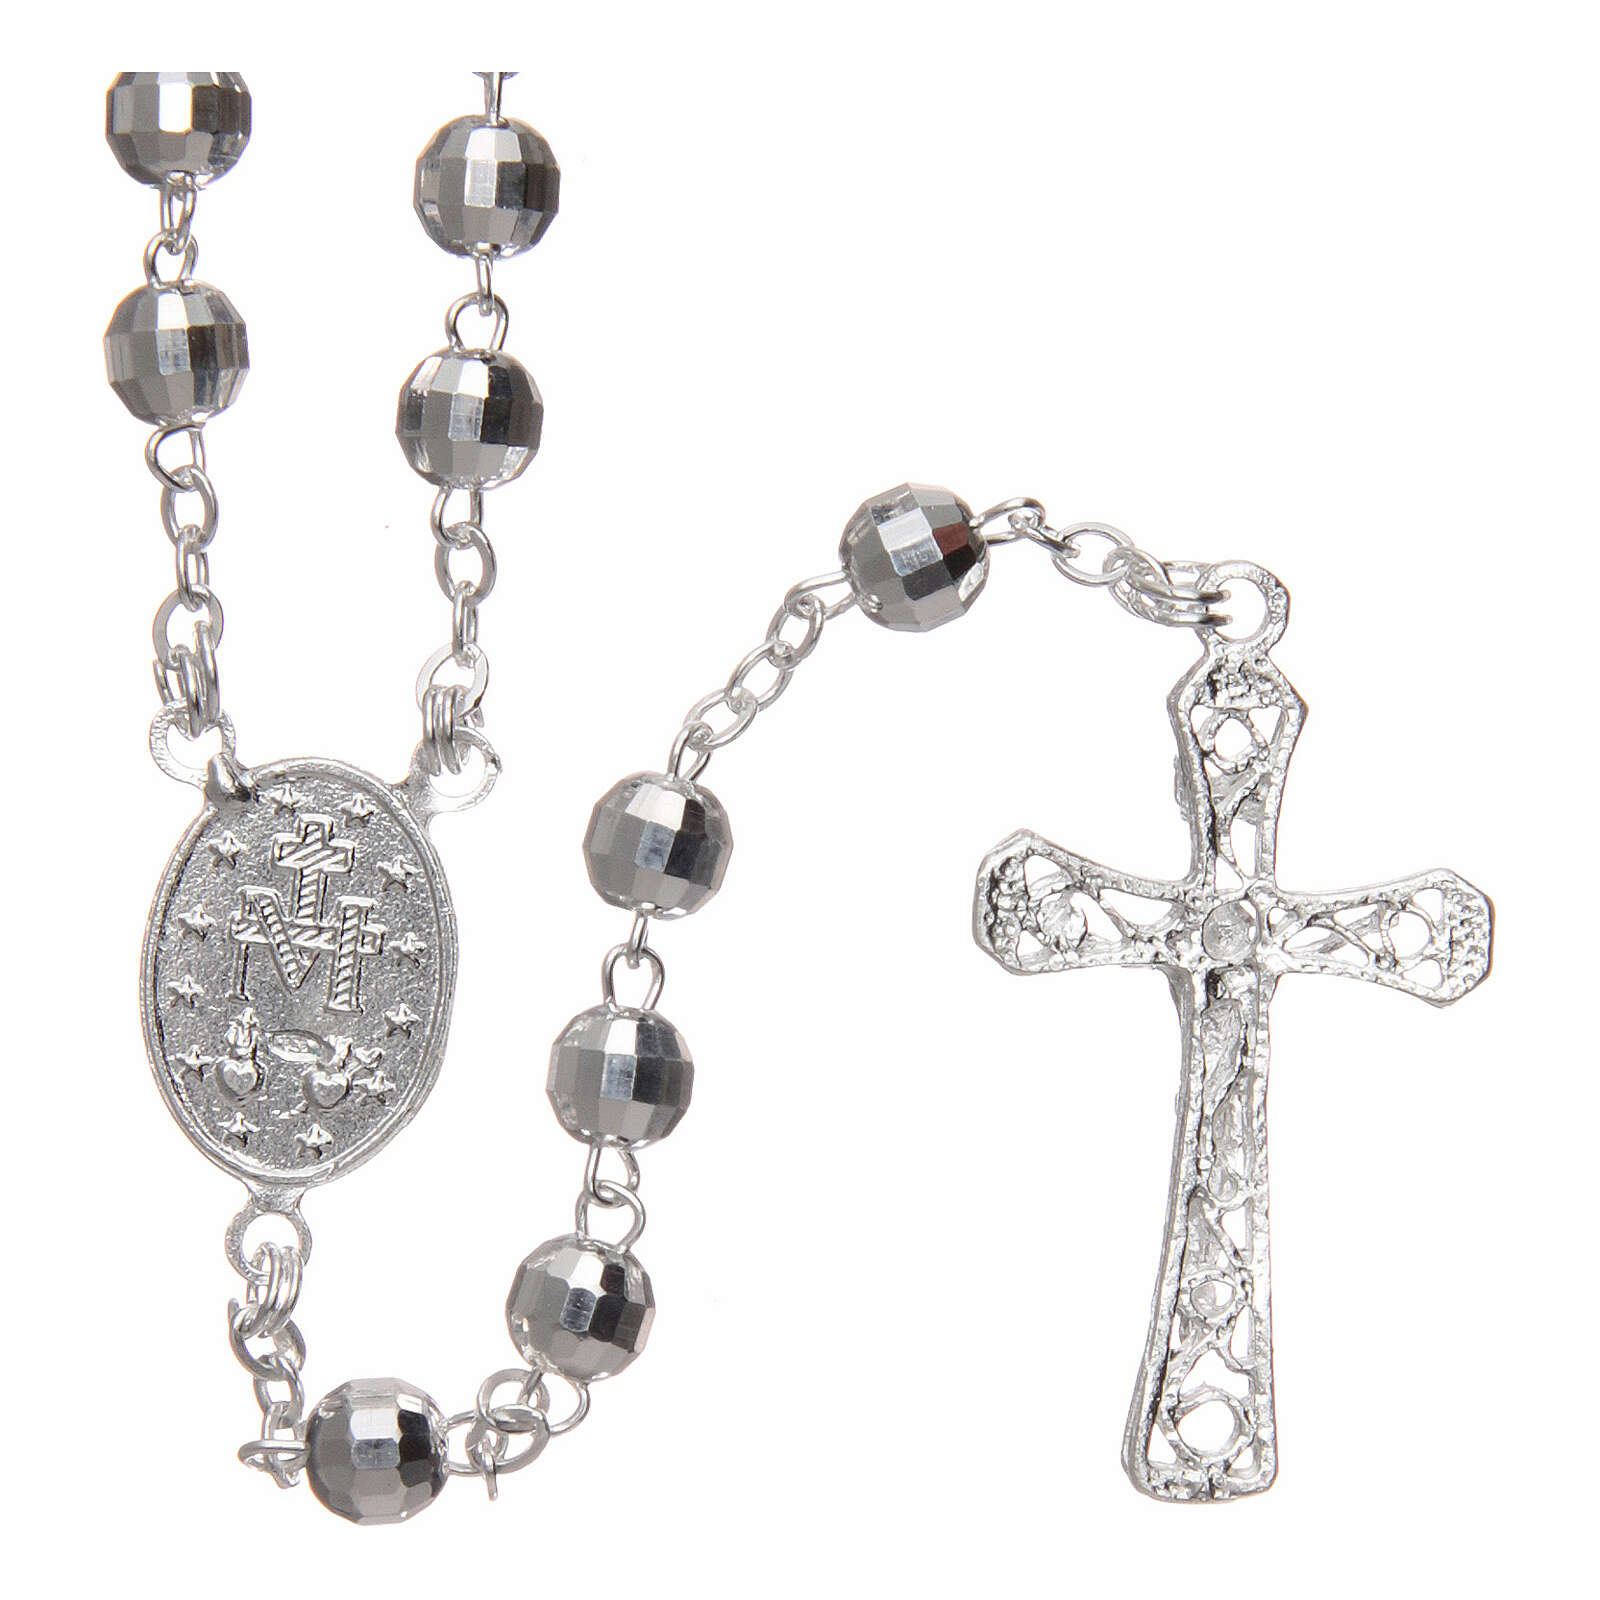 Silver rosary faceted beads 5 mm 4